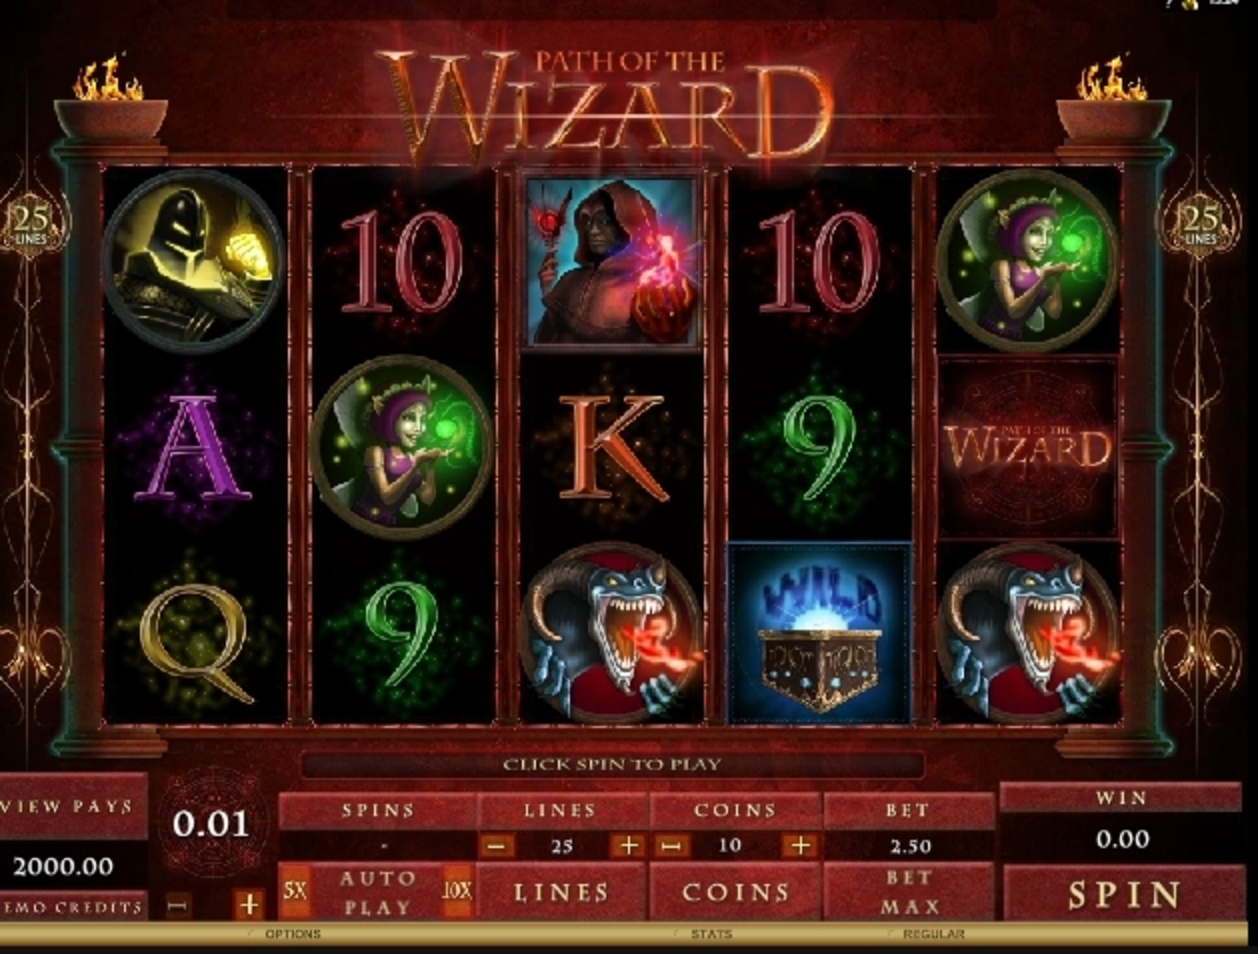 Reels in Path of the Wizard Slot Game by Microgaming